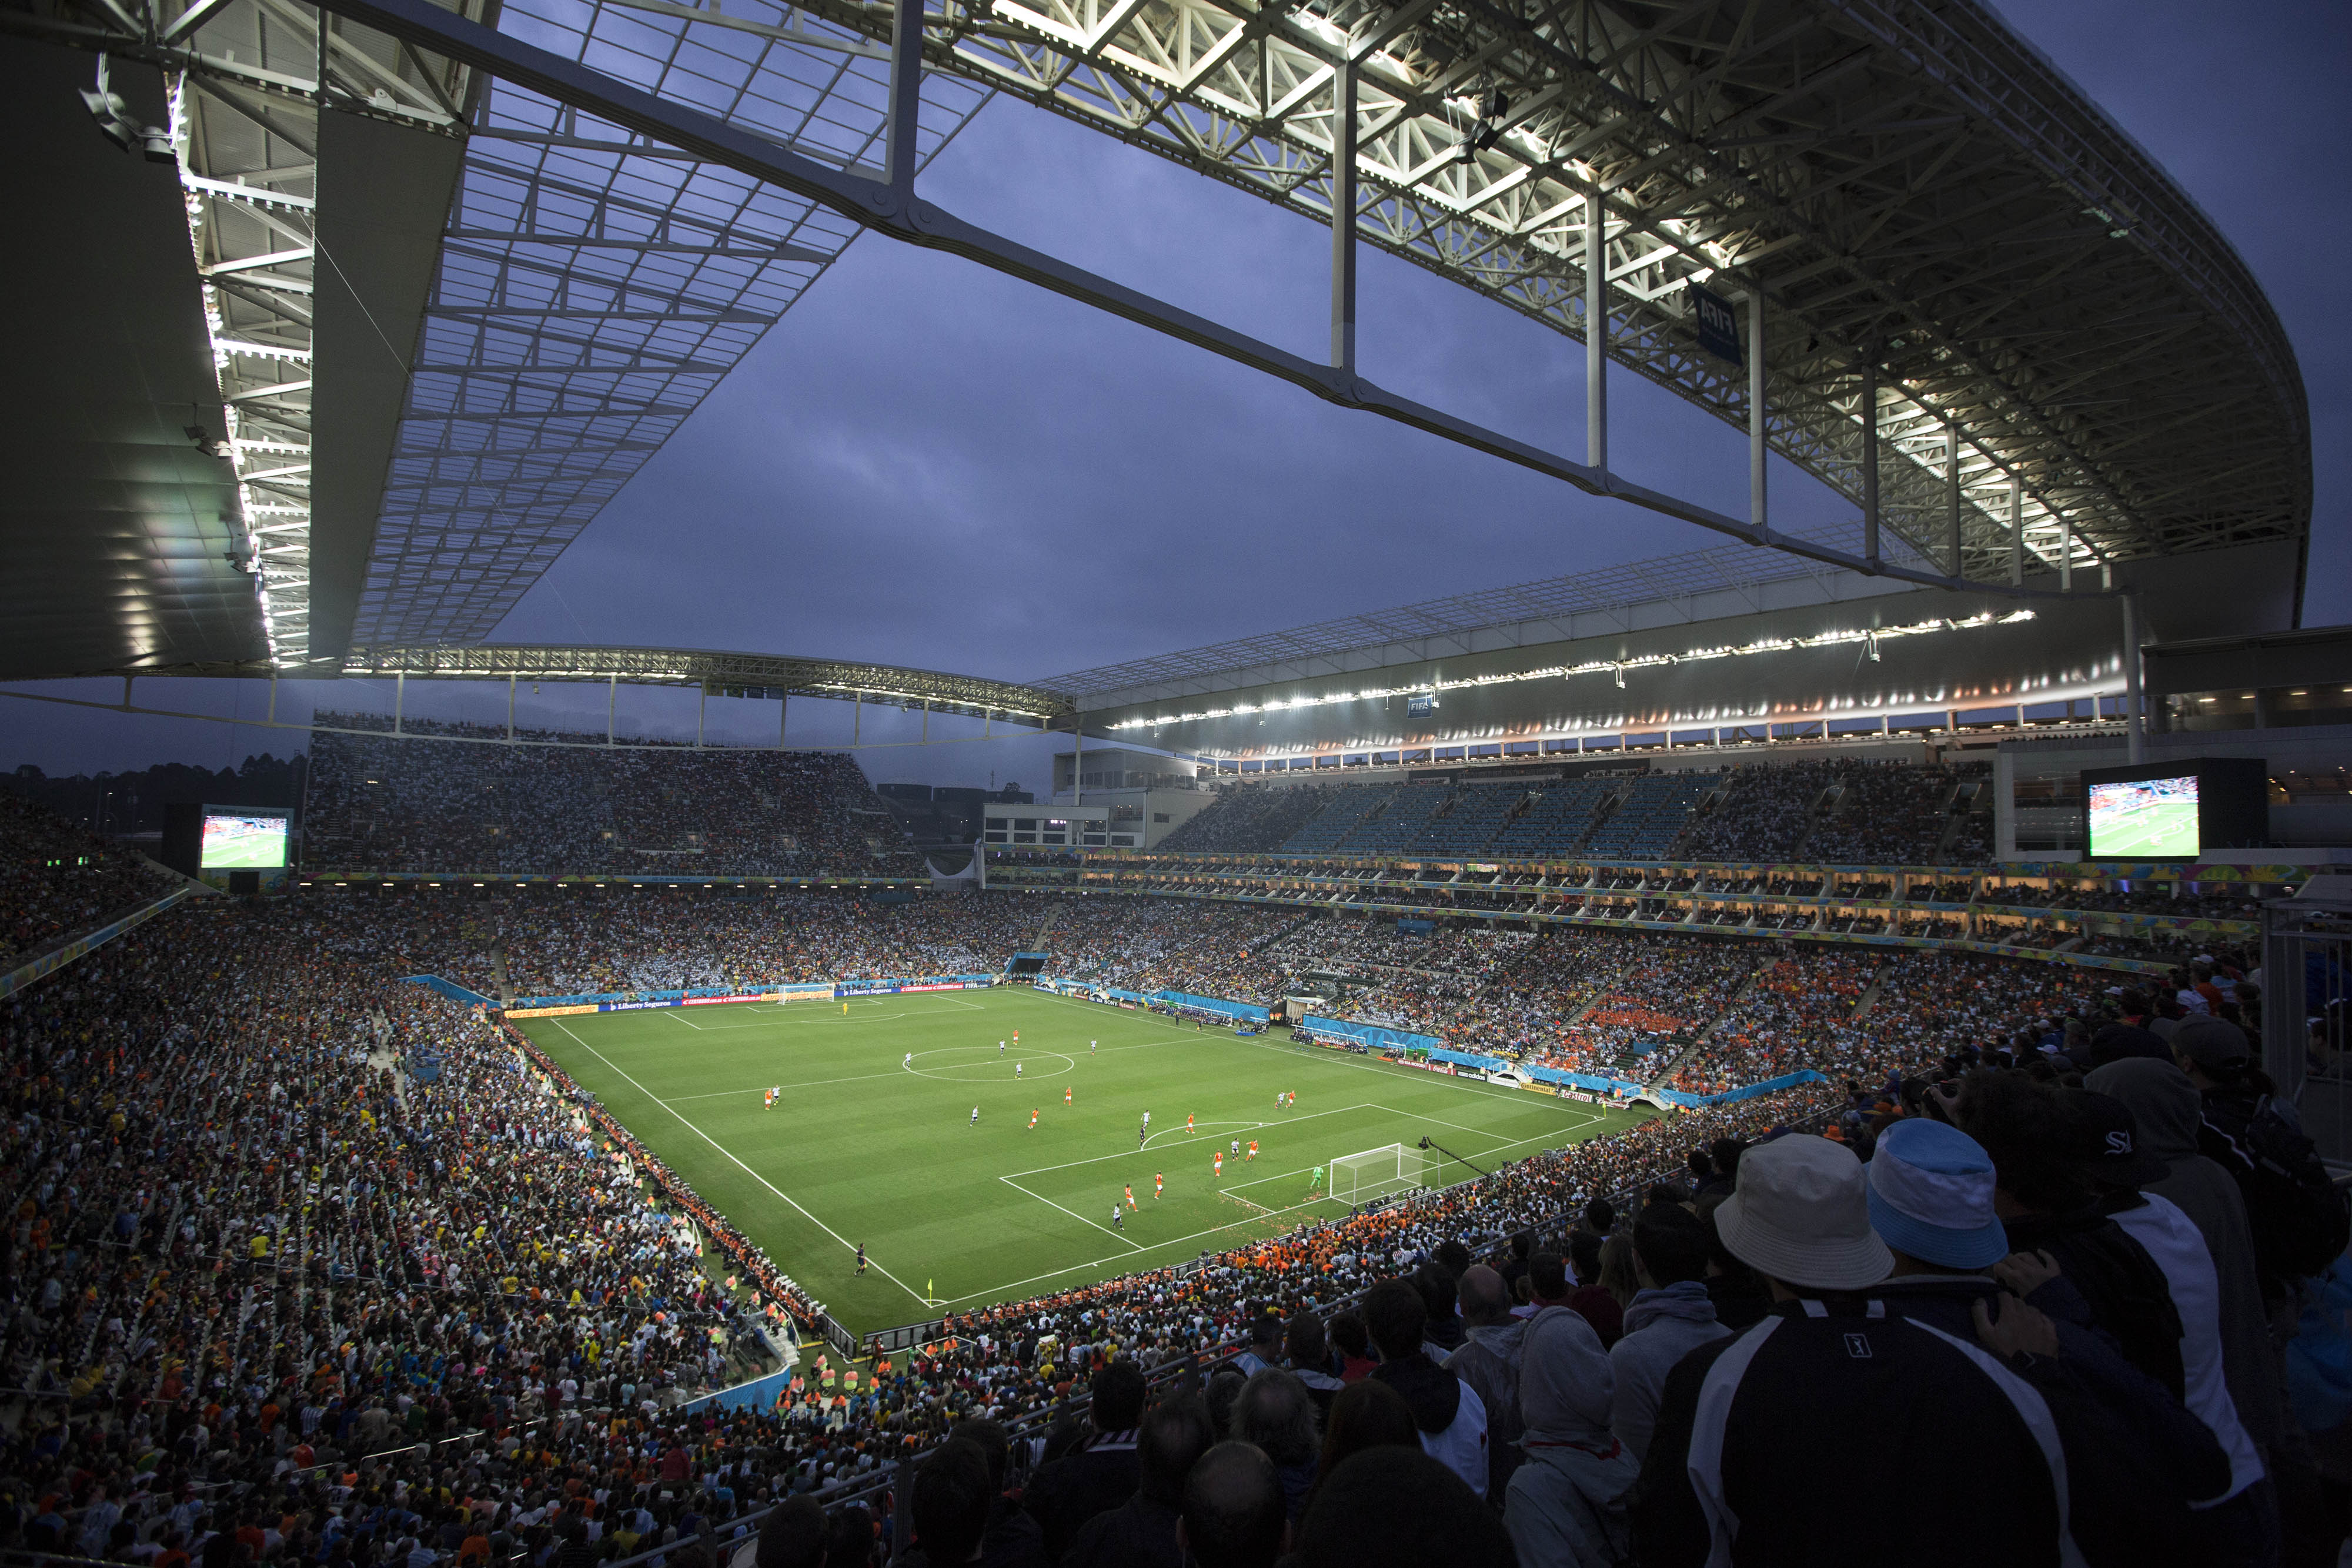 FILE - In this July 9, 2014 file photo, soccer fans watch the World Cup semifinal match between the Netherlands and Argentina in the Itaquerao Stadium, in Sao Paulo Brazil. The 2016 Olympic matches will be held in venues built or renovated for last year's